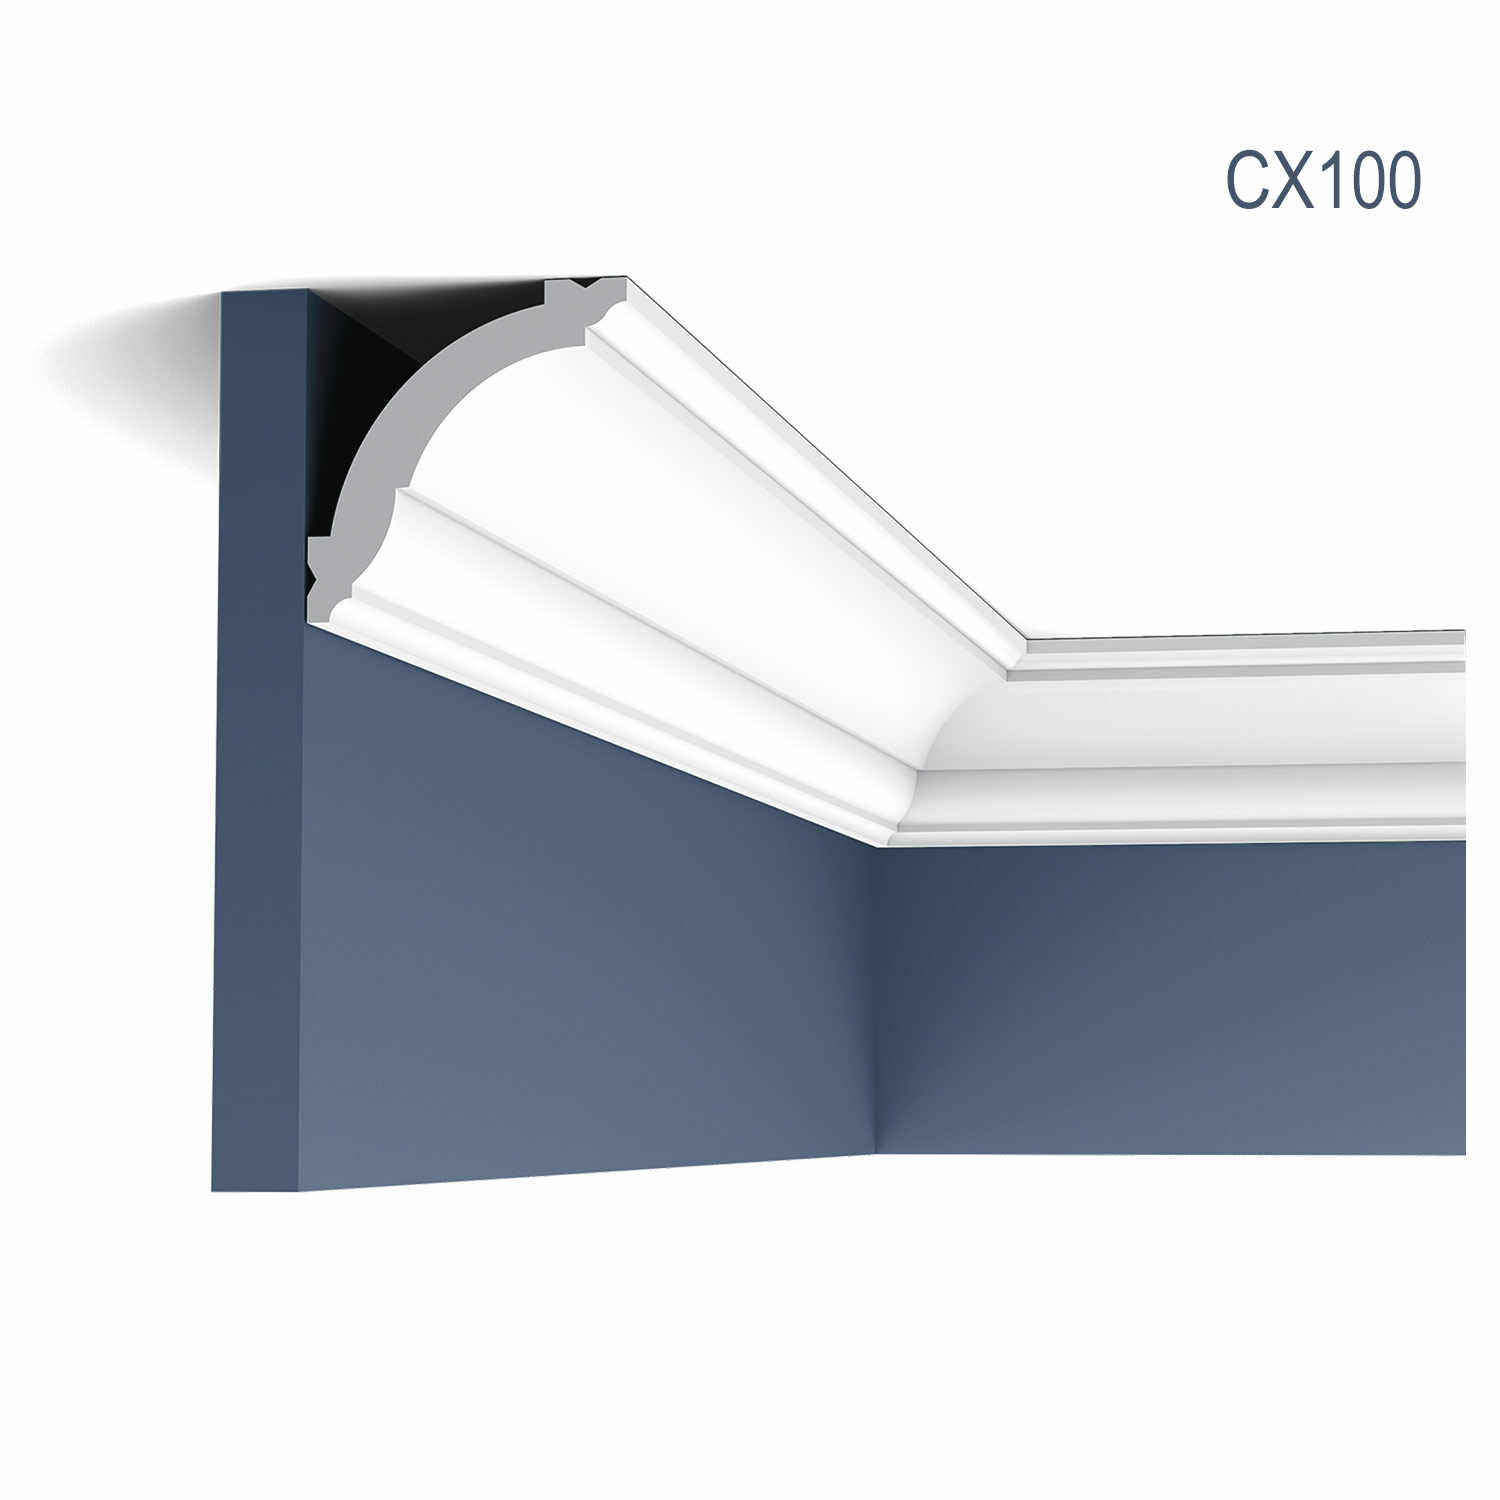 Cornisa Axxent CX100, Dimensiuni: 200 X 6.9 X 7.1 cm, Orac Decor